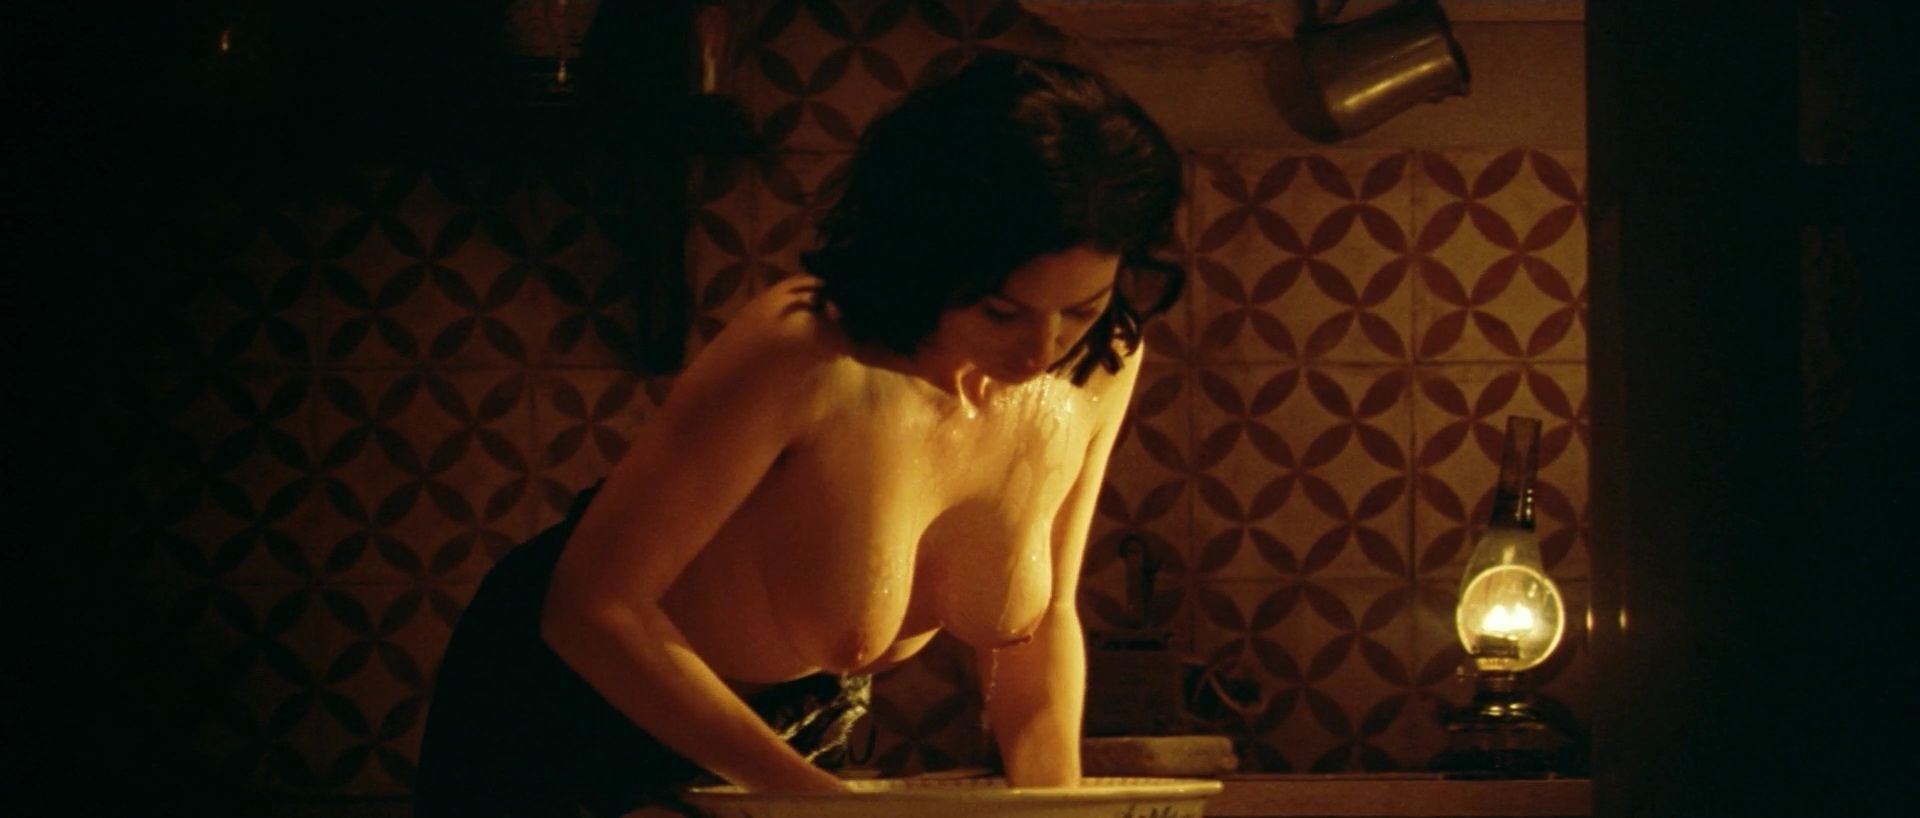 Best Monica Bellucci Naked Gif